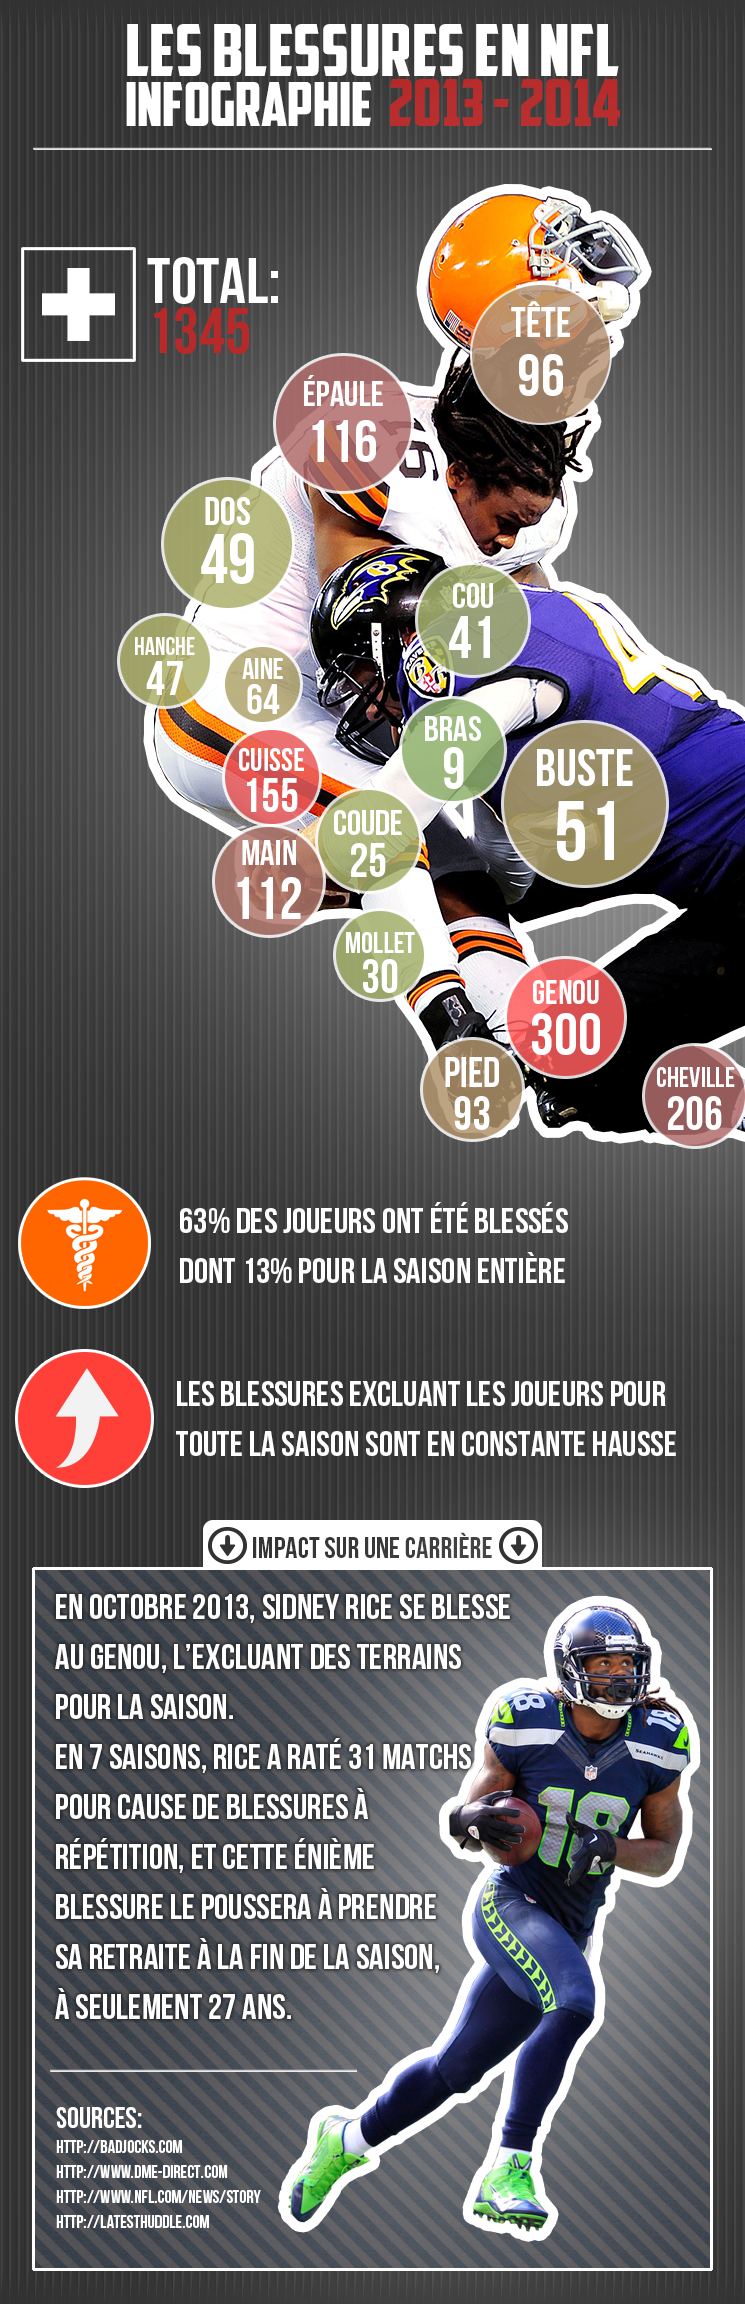 InfographieBlessures20132014